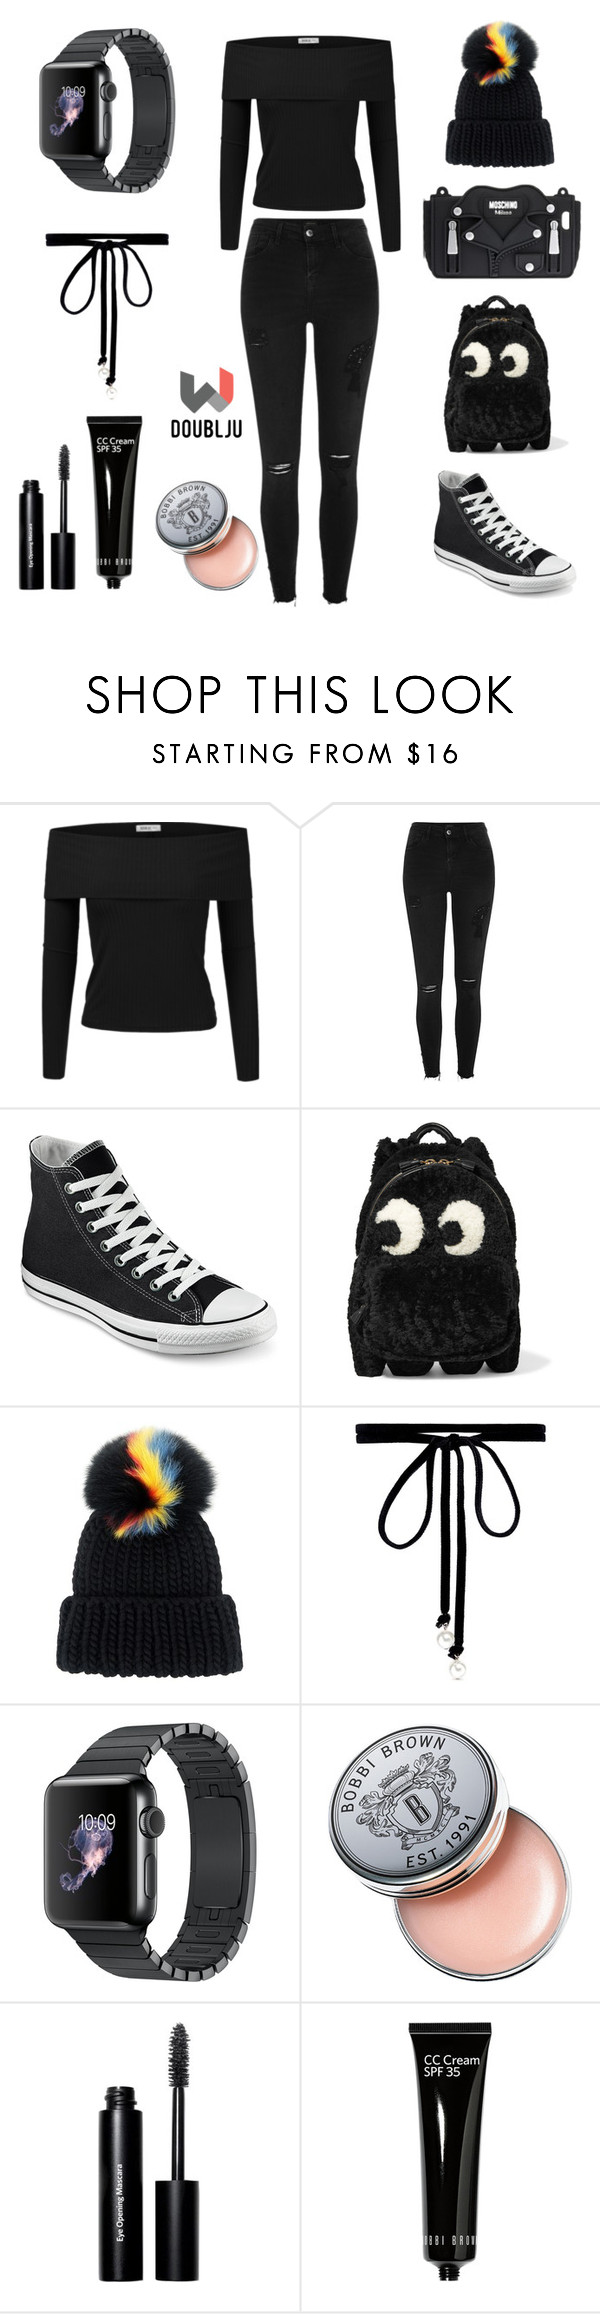 """Doublju Women's Off Shoulder Style"" by doublju-company ❤ liked on Polyvore featuring Doublju, River Island, Converse, Anya Hindmarch, Eugenia Kim, Joomi Lim, Bobbi Brown Cosmetics and Moschino"